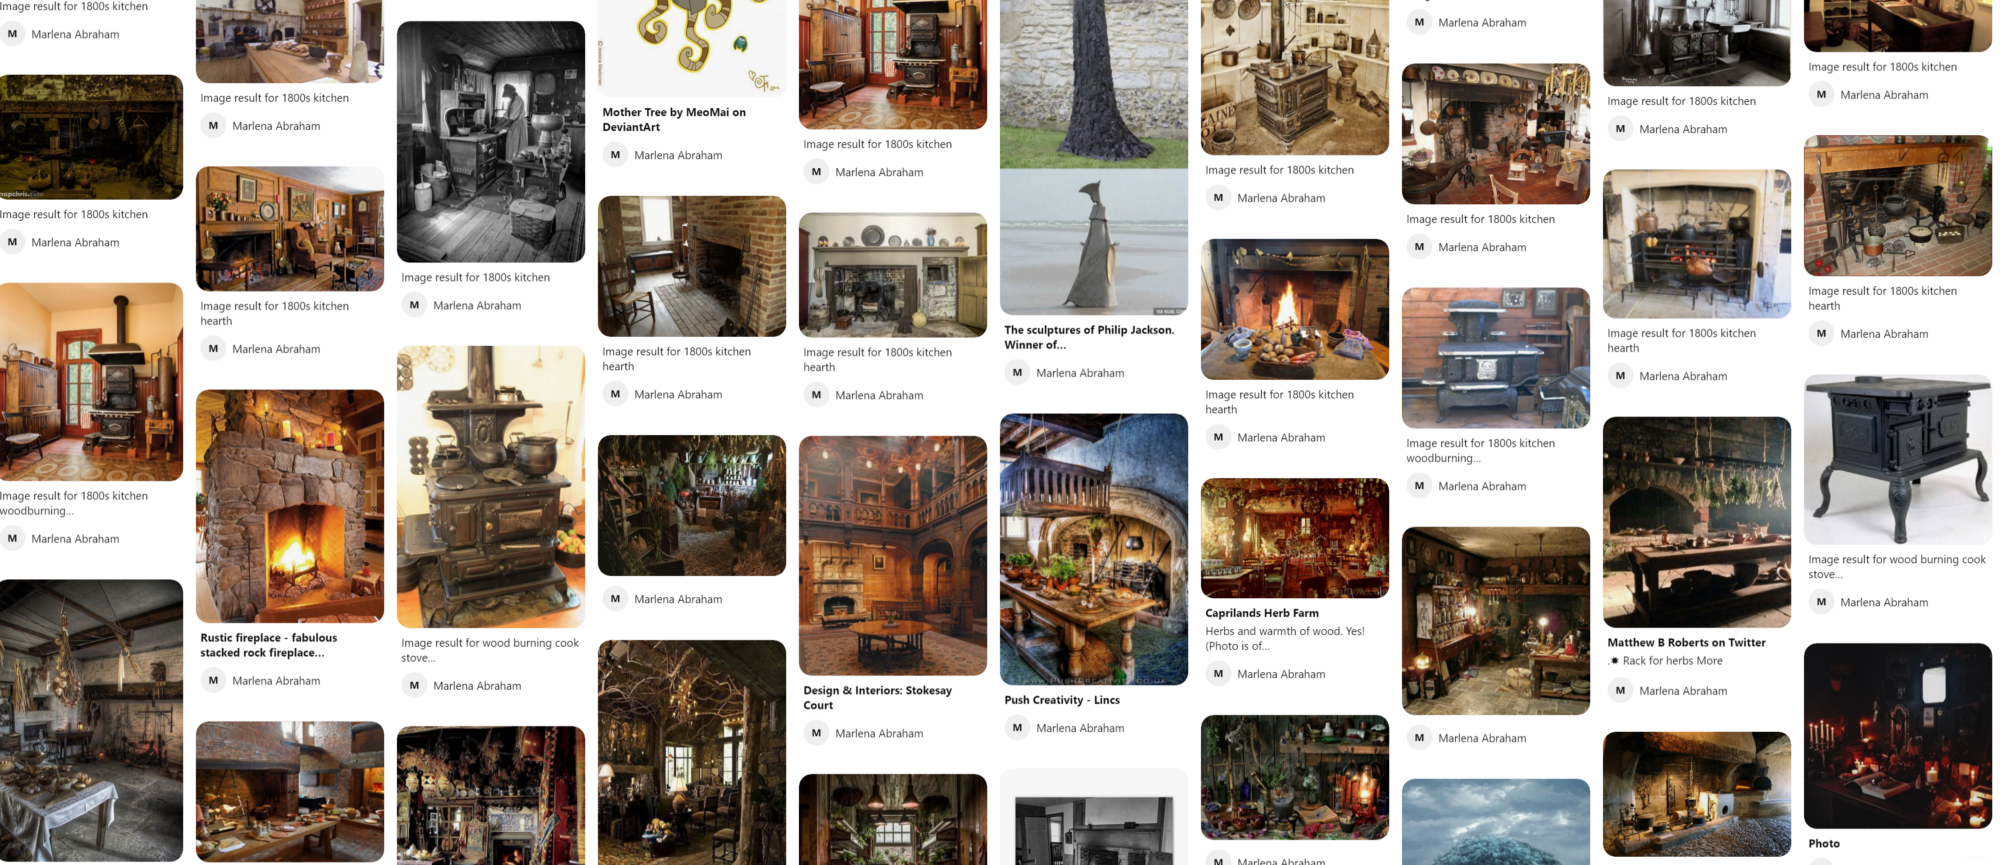 A Pinterest board of old-fashioned medieval to Georgian rural kitchens